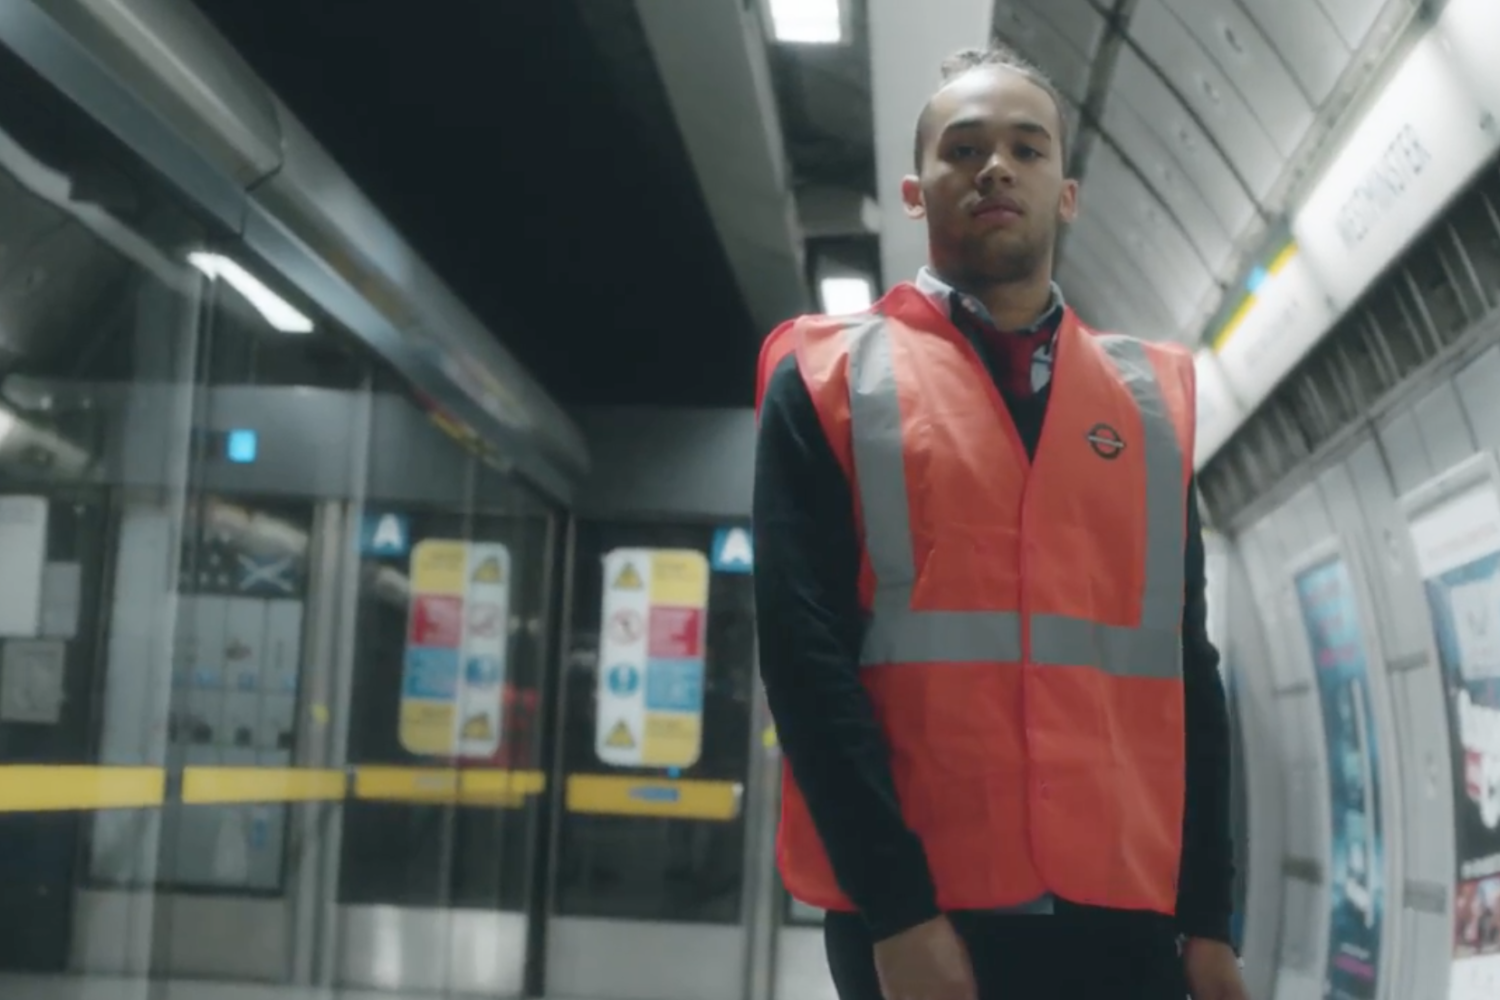 Drones Club take the tube in video for 'International'